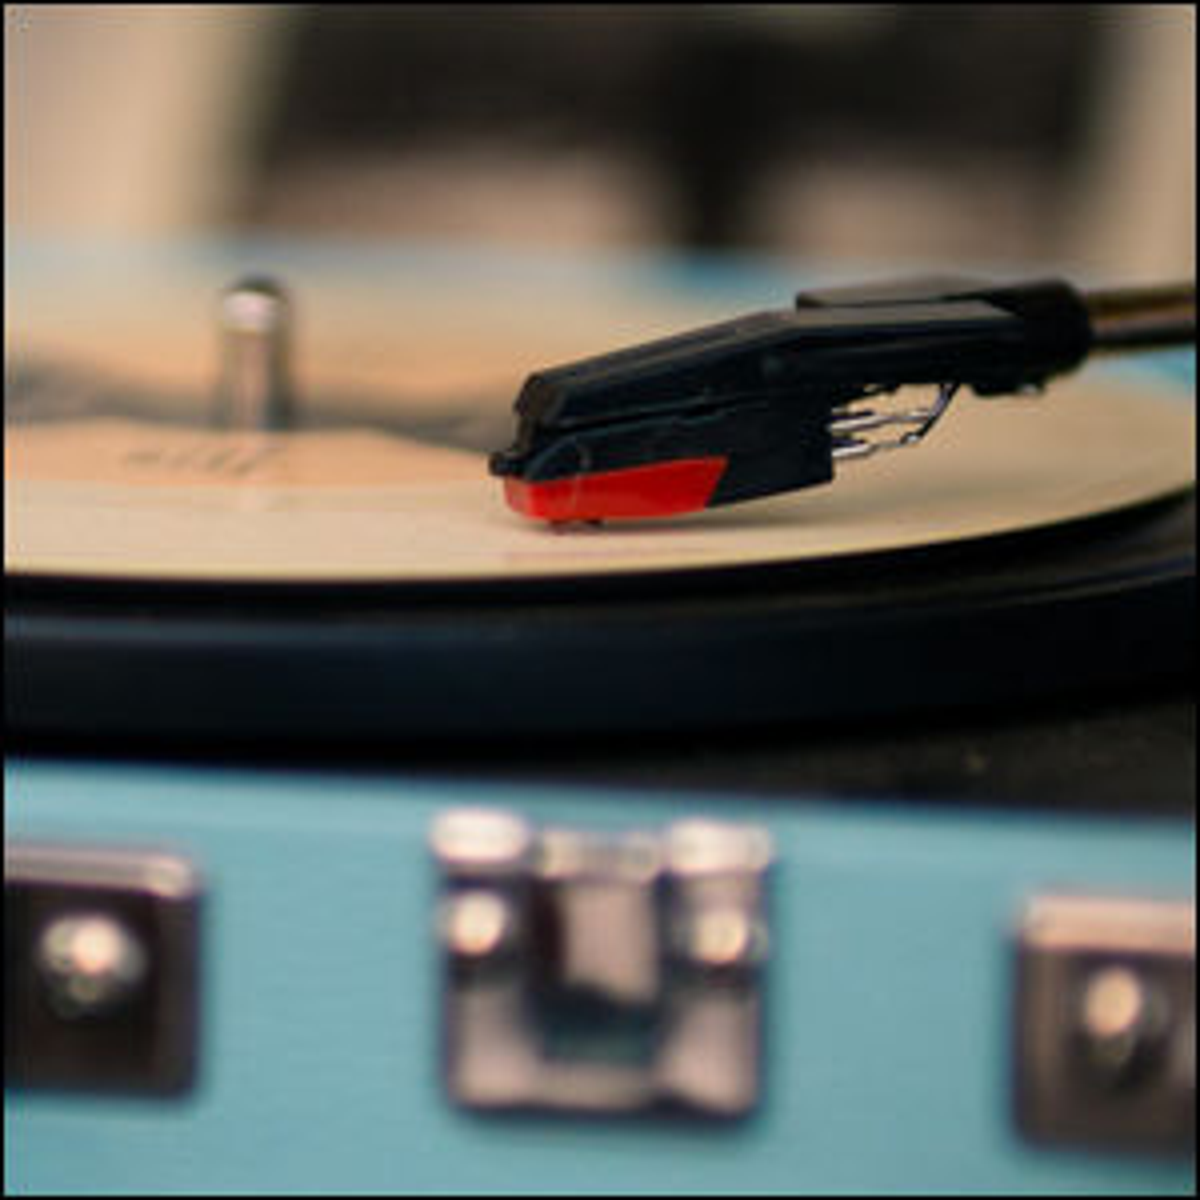 A record stylus tracing the groove on a vinyl record.